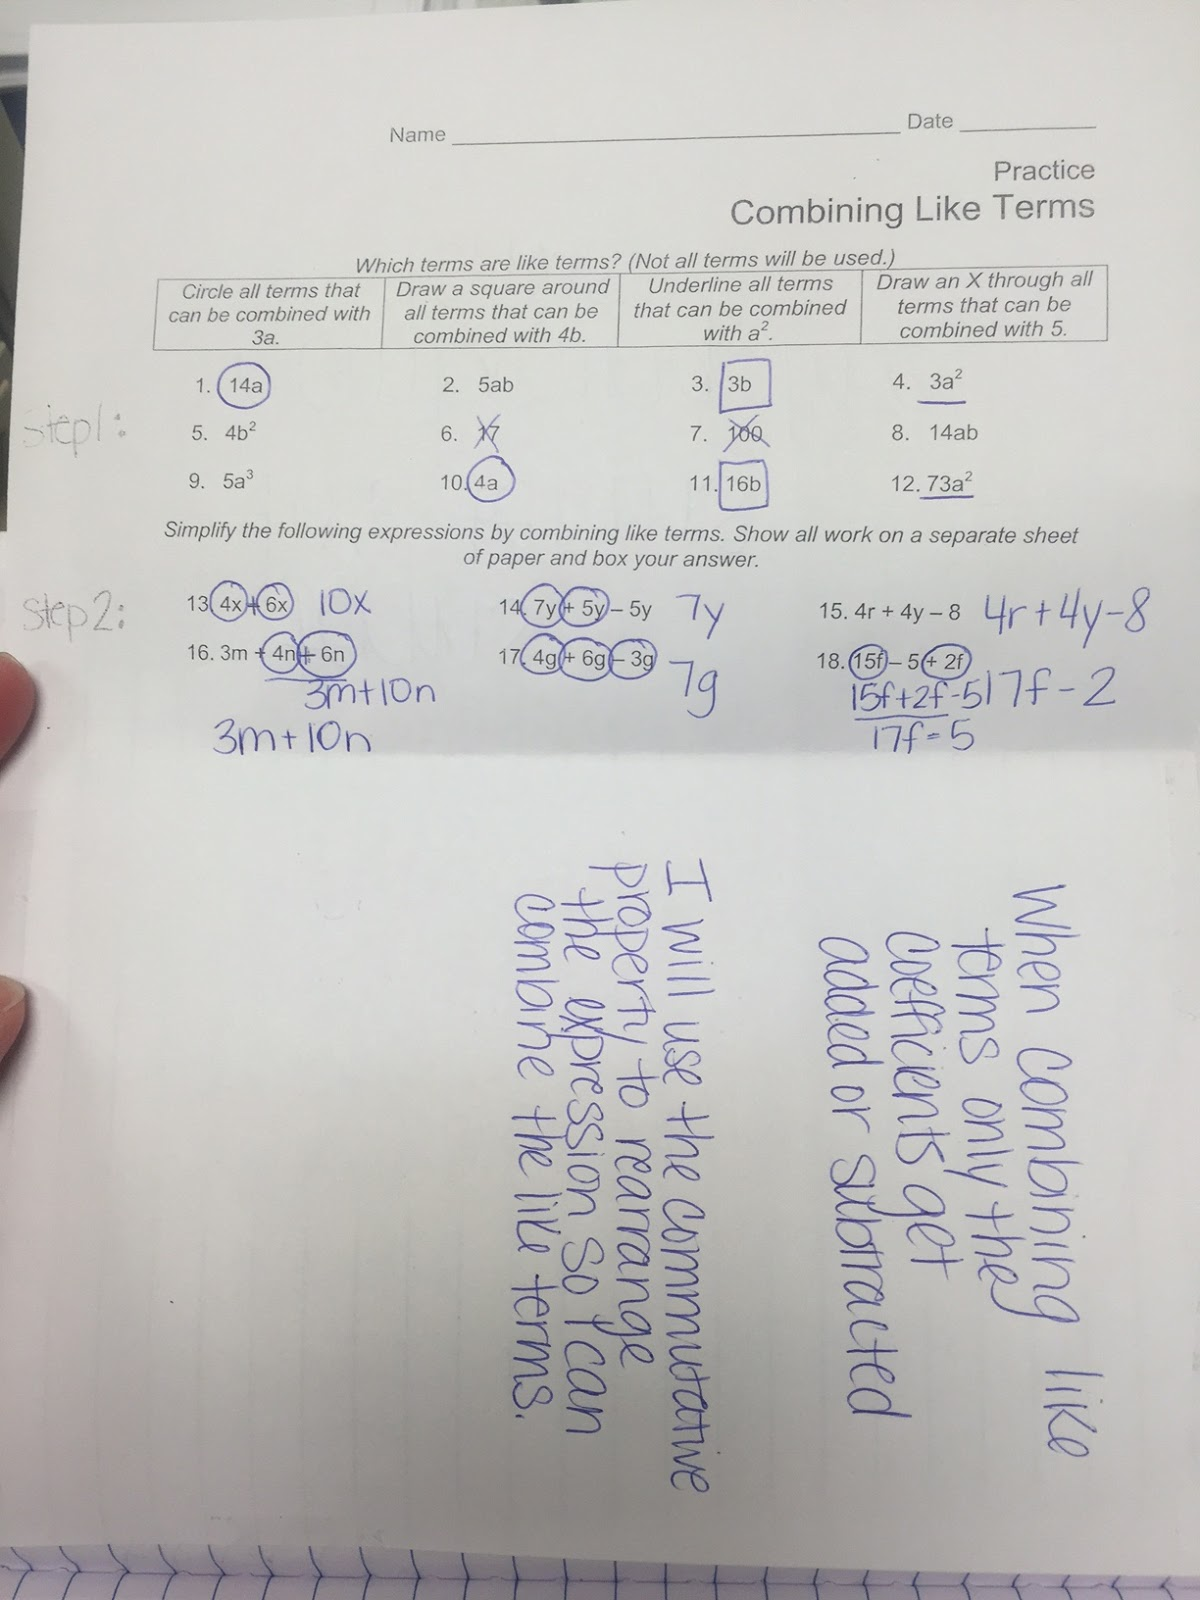 Mrs Whites 6th Grade Math Blog COMBINING LIKE TERMS PRACTICE – Combining Like Terms Worksheet 6th Grade